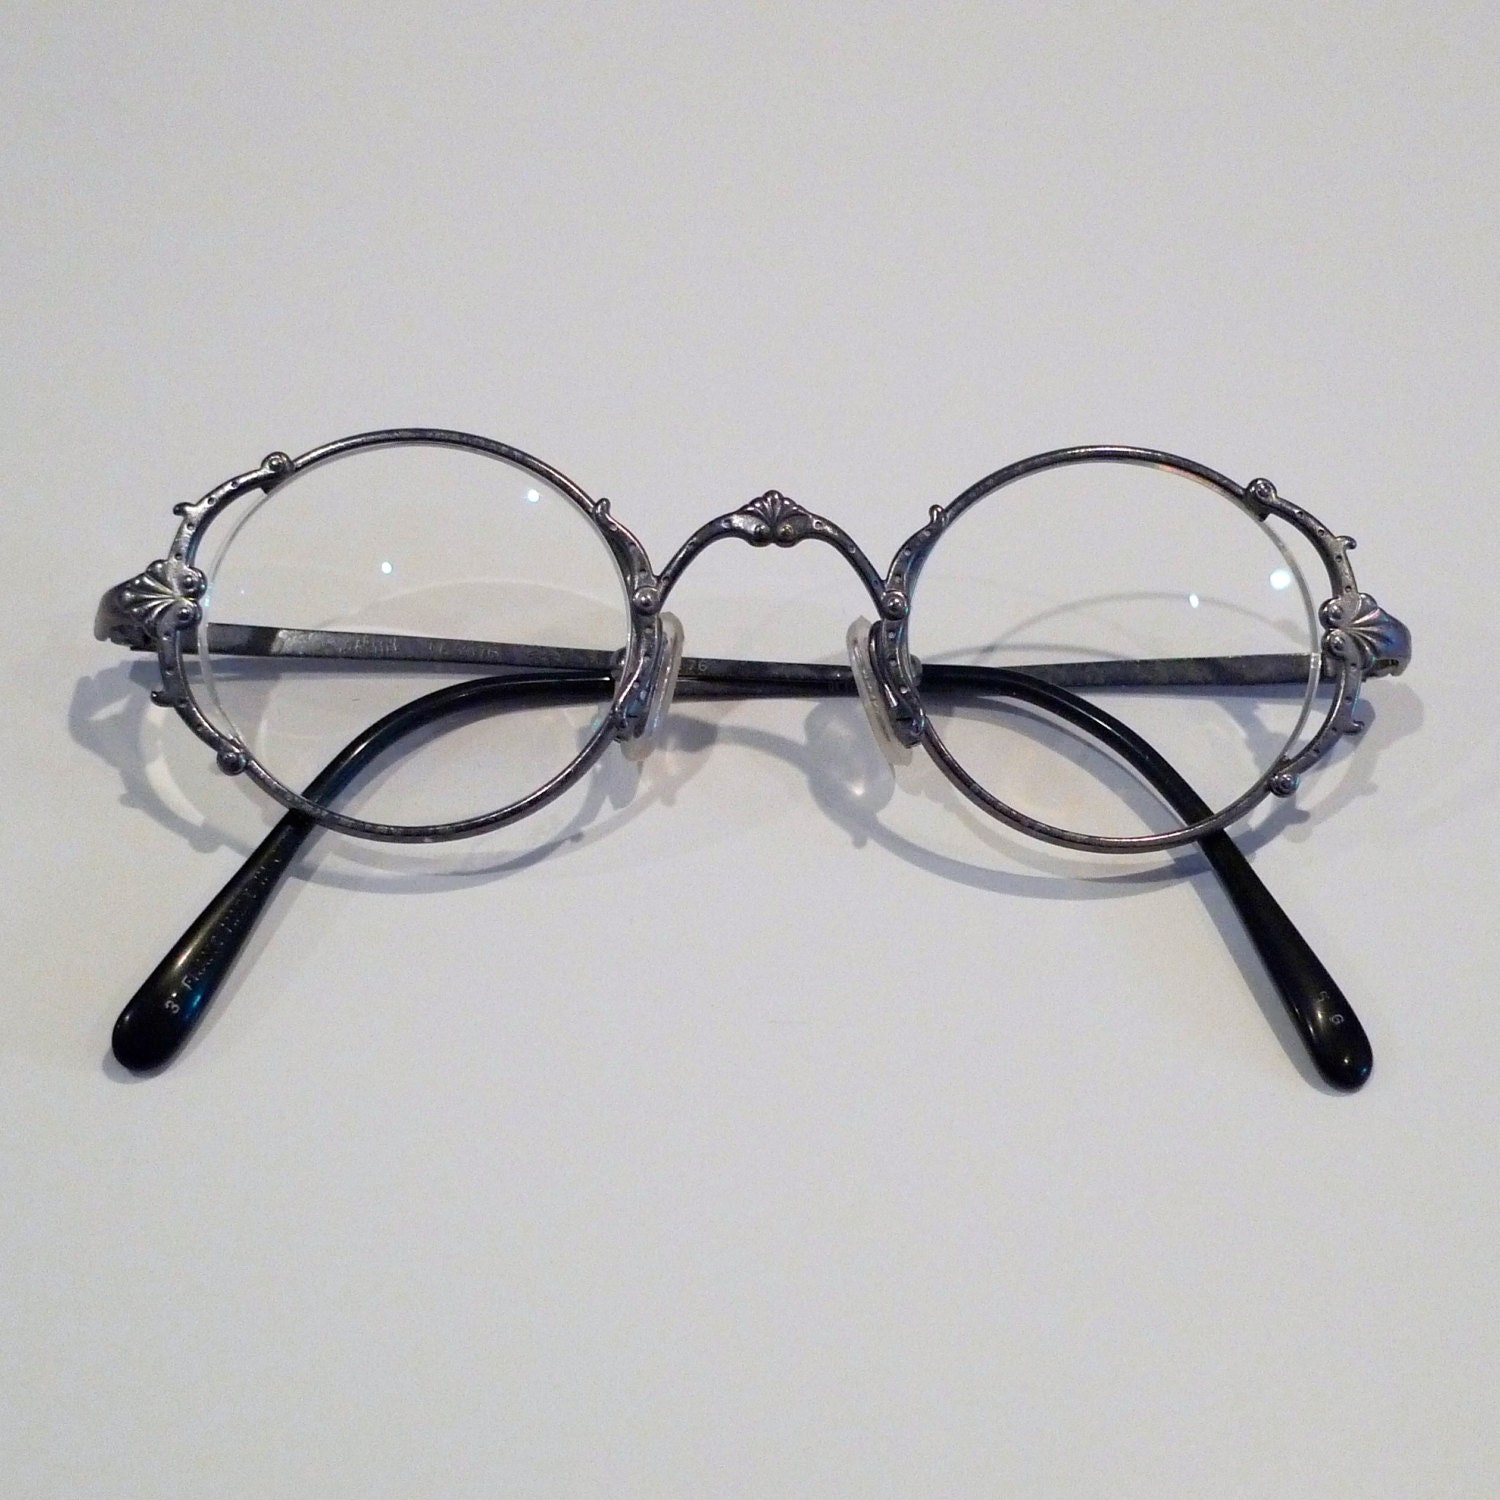 Jean Paul Gaultier Eyeglasses And Case Vintage Door Hinge